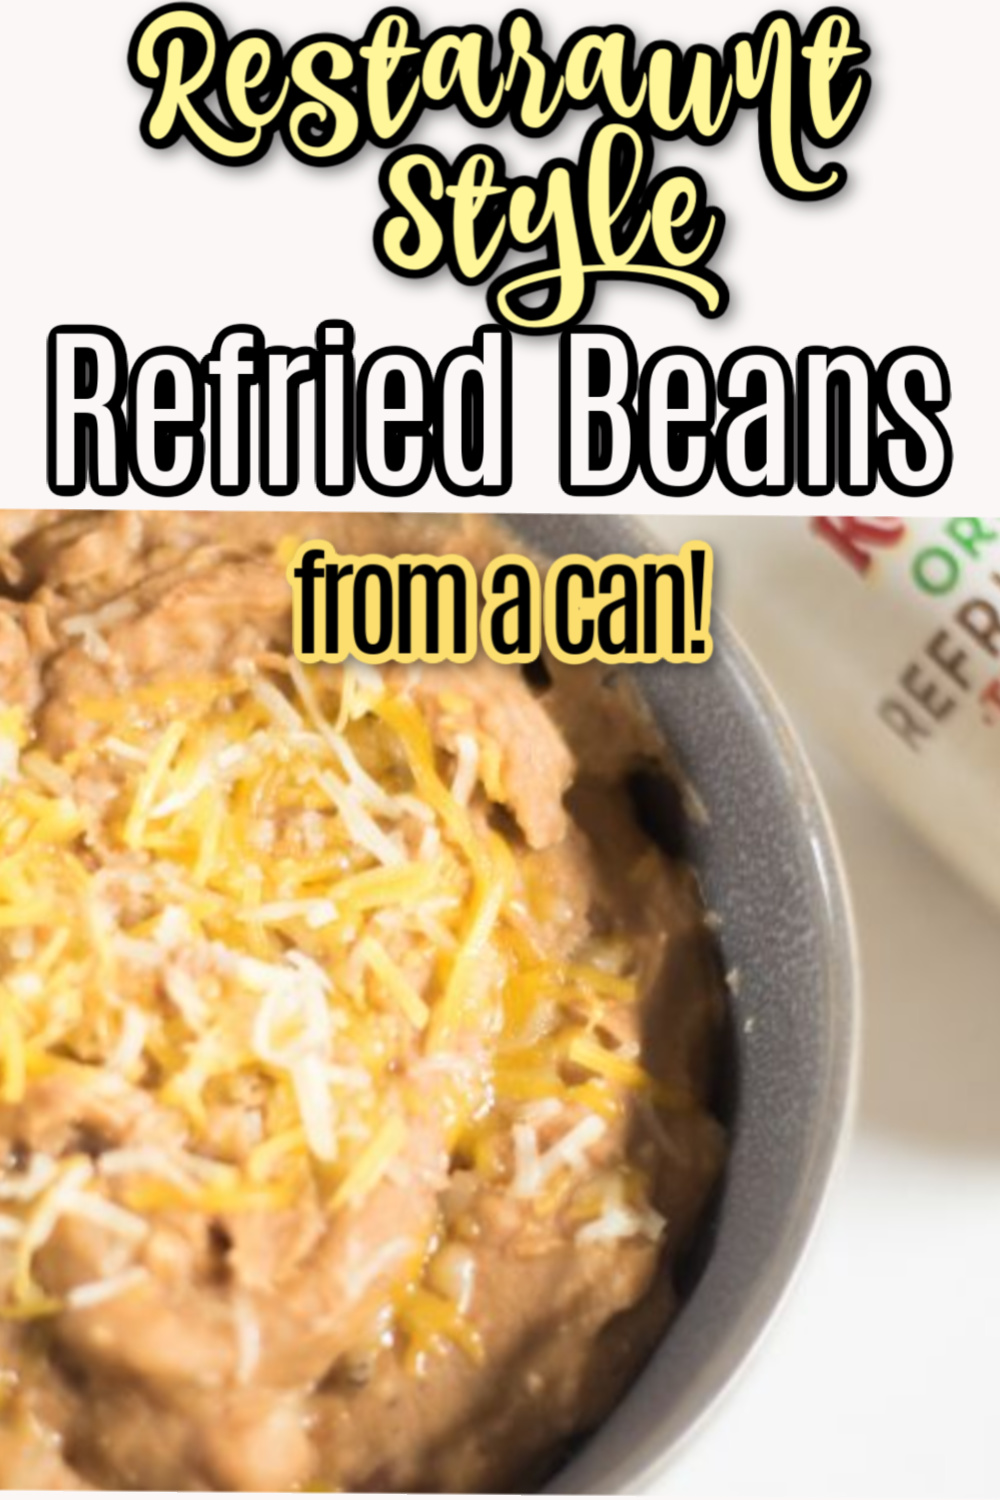 How to make canned refried beans taste better and like they are restaurant-style beans! via @simplysidedishes89